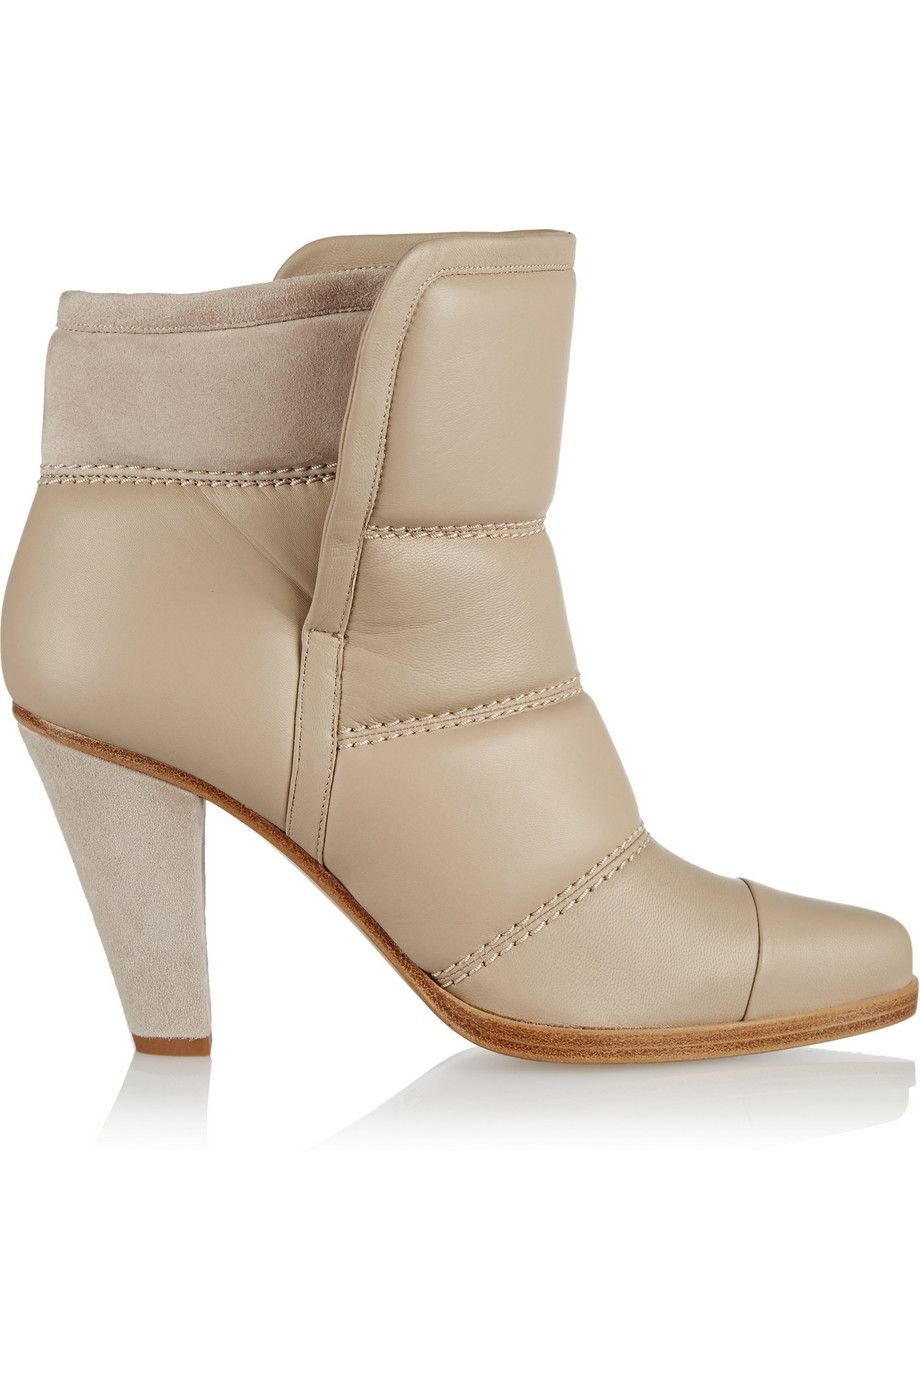 Chloé | Padded leather and suede ankle boots